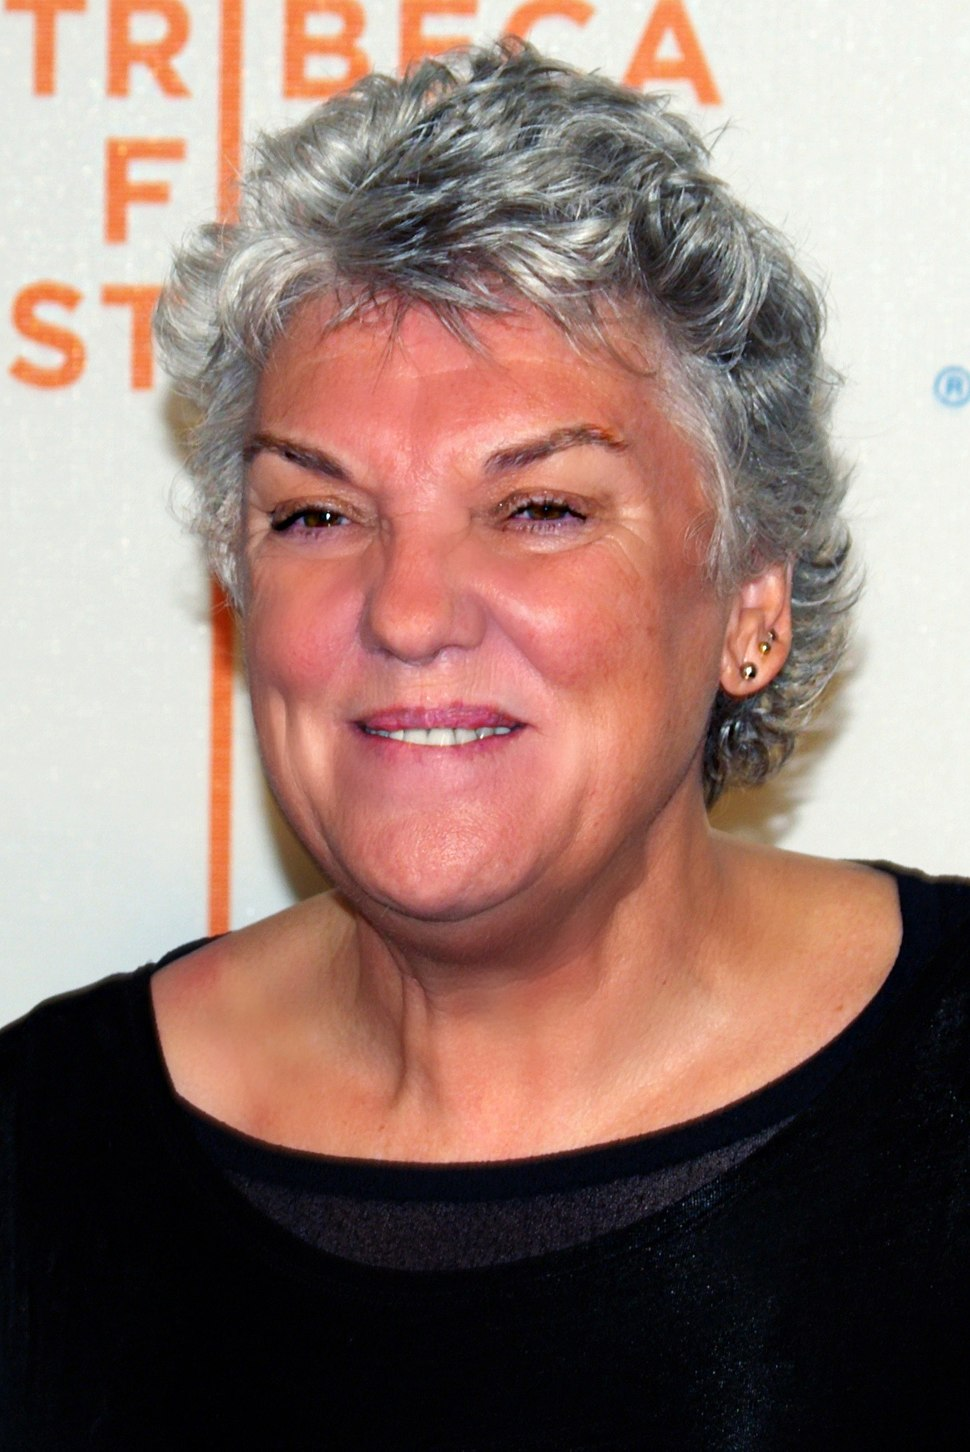 Tyne Daly at the 2009 Tribeca Film Festival